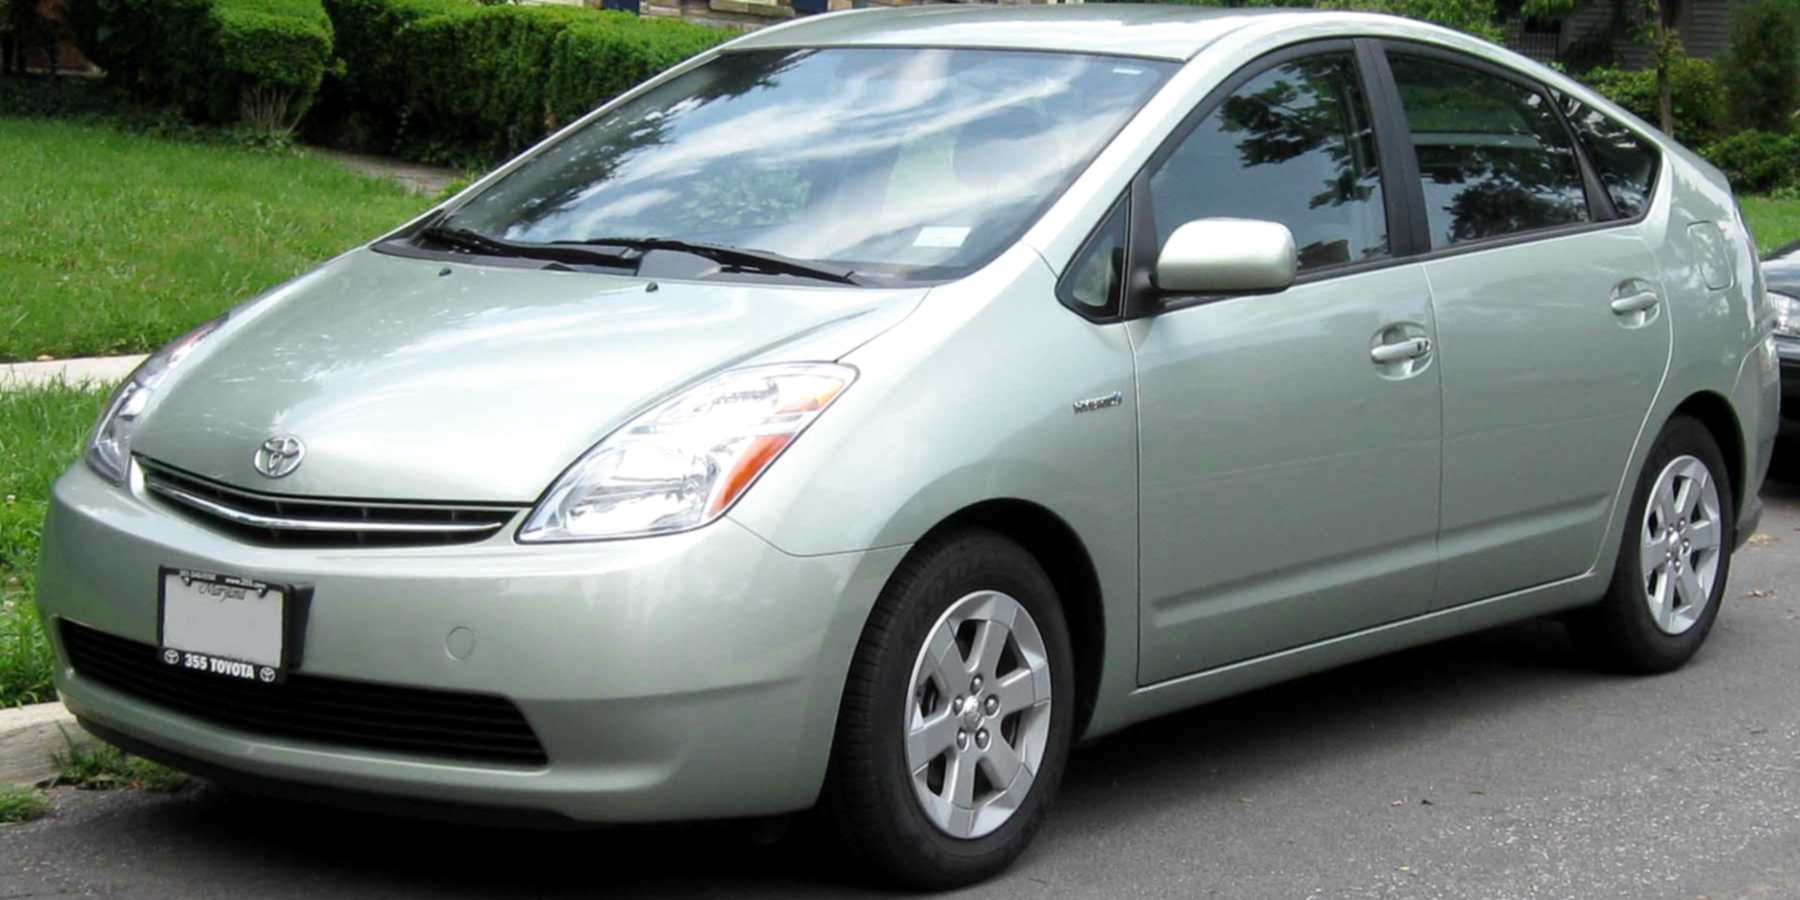 The second generation Toyota Prius